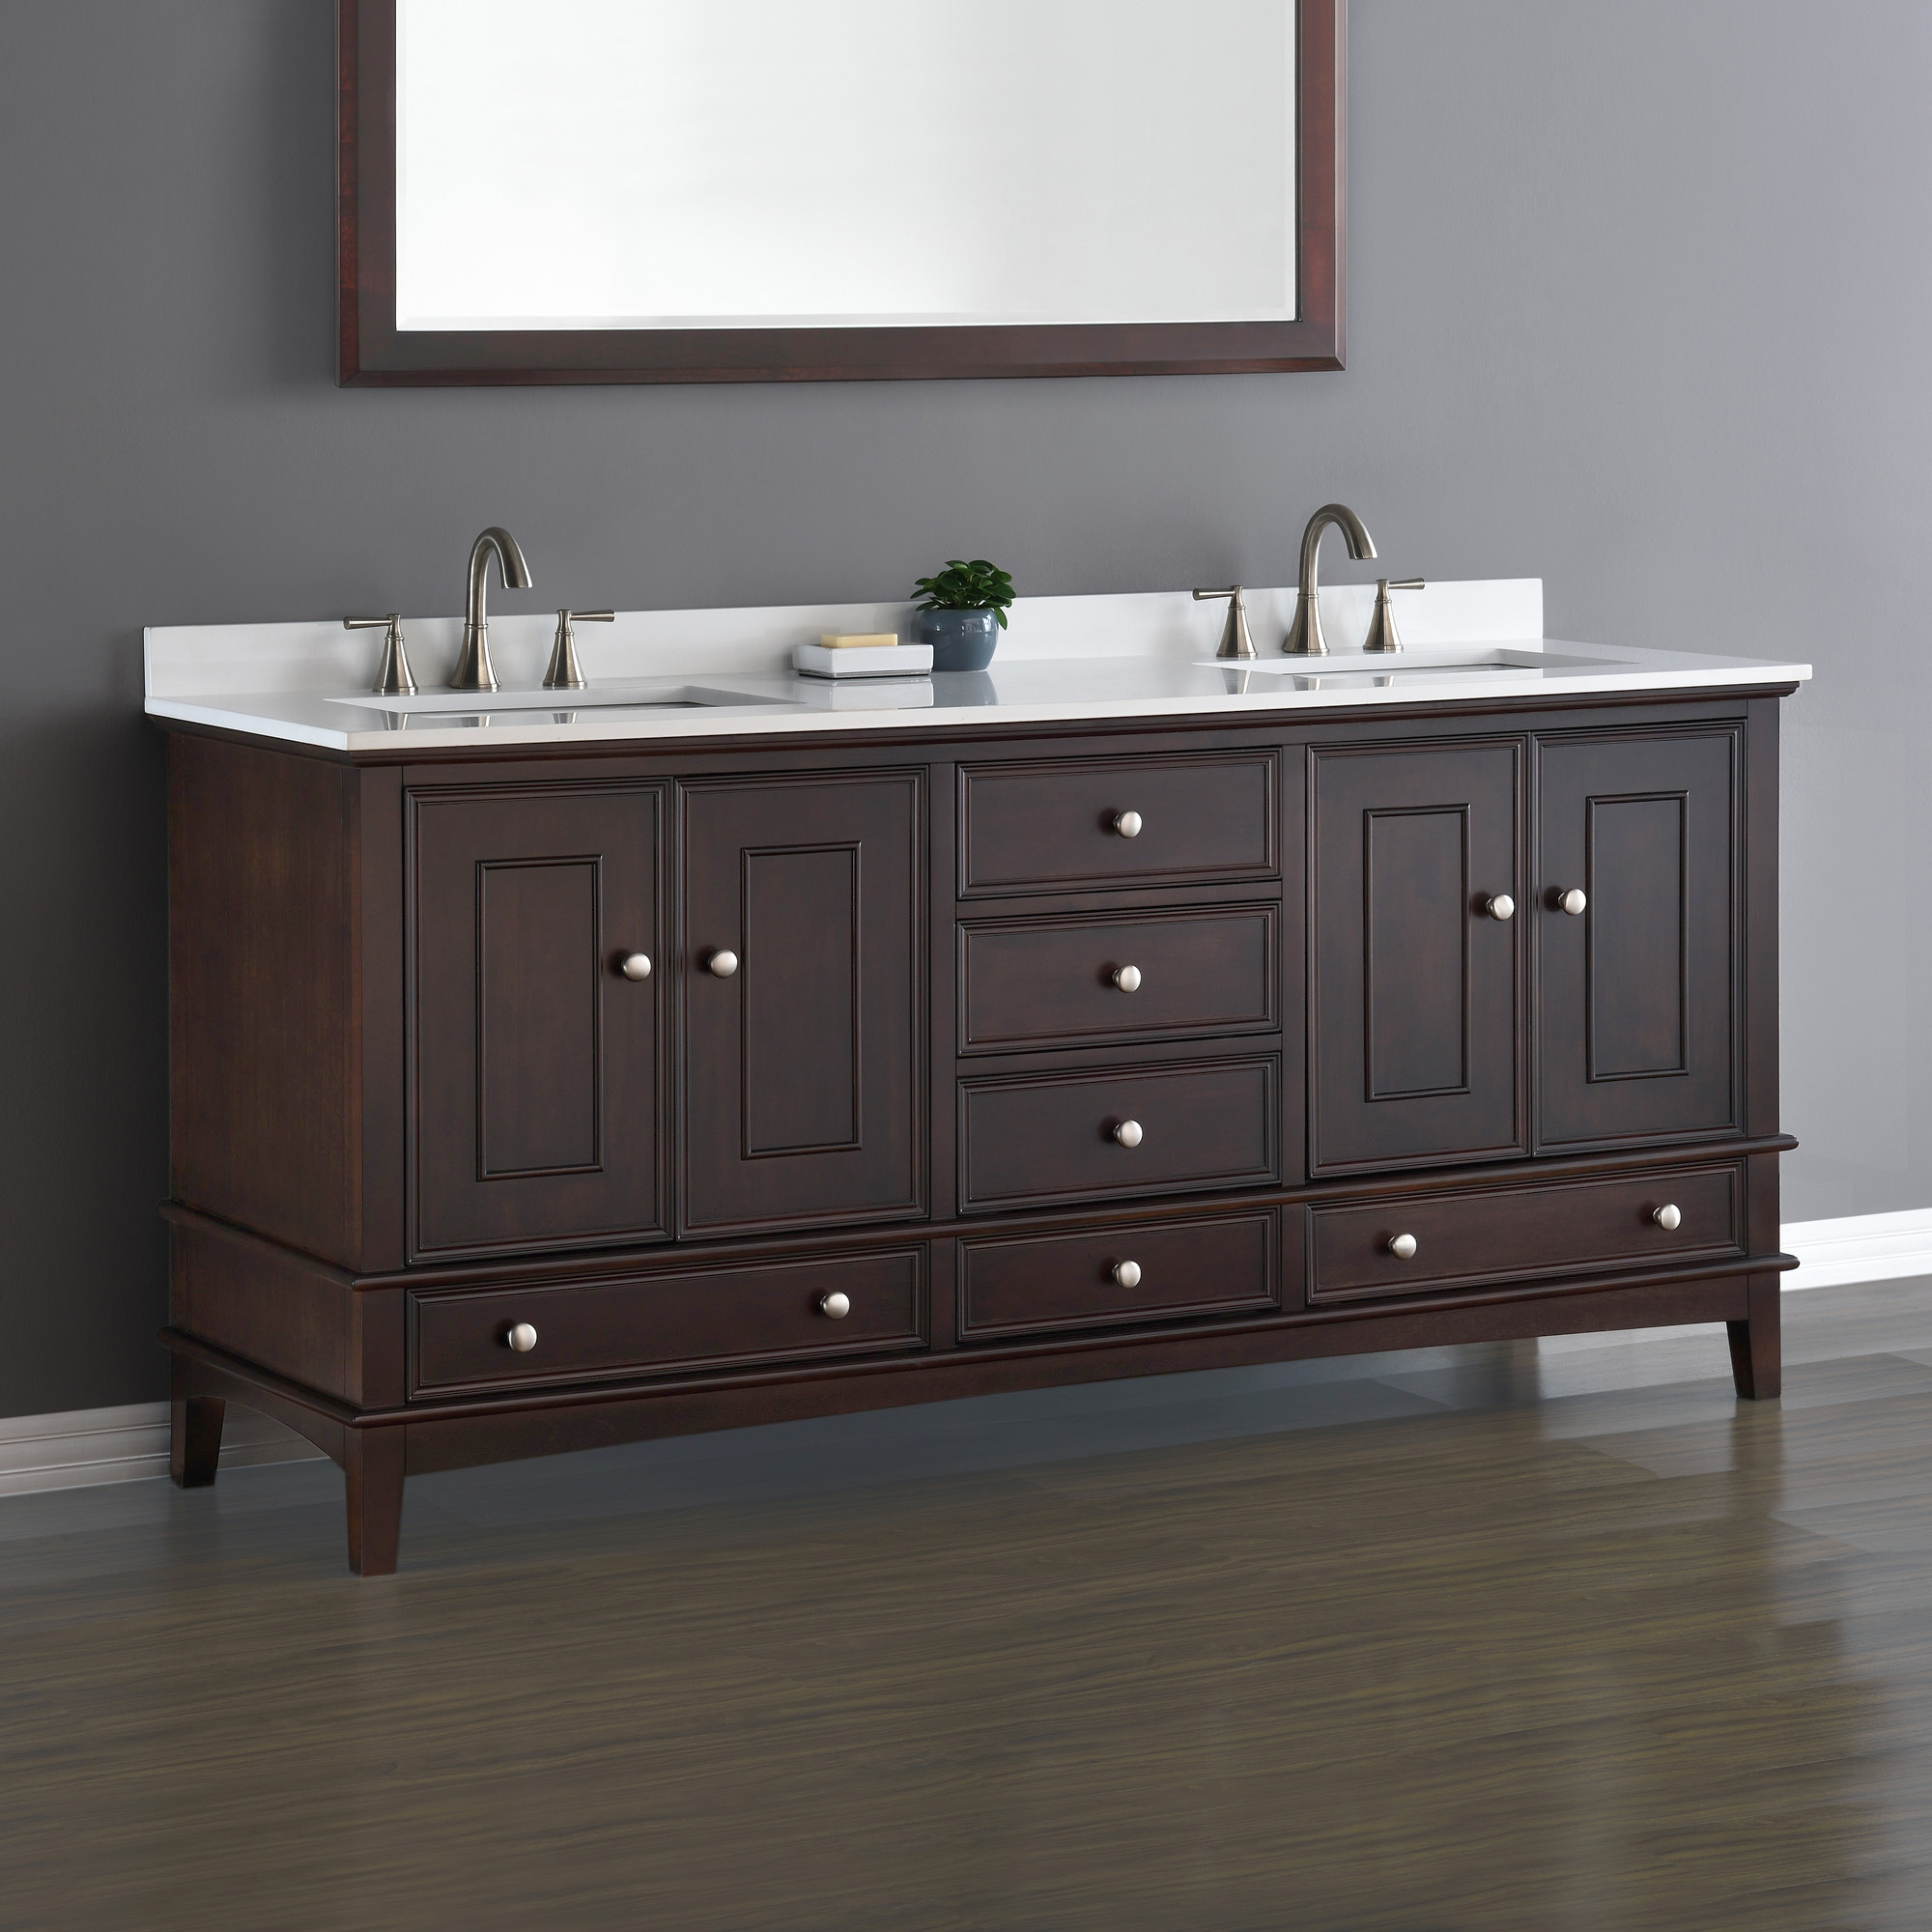 Bathroom Vanity 72 Double Sink Cambridge 72